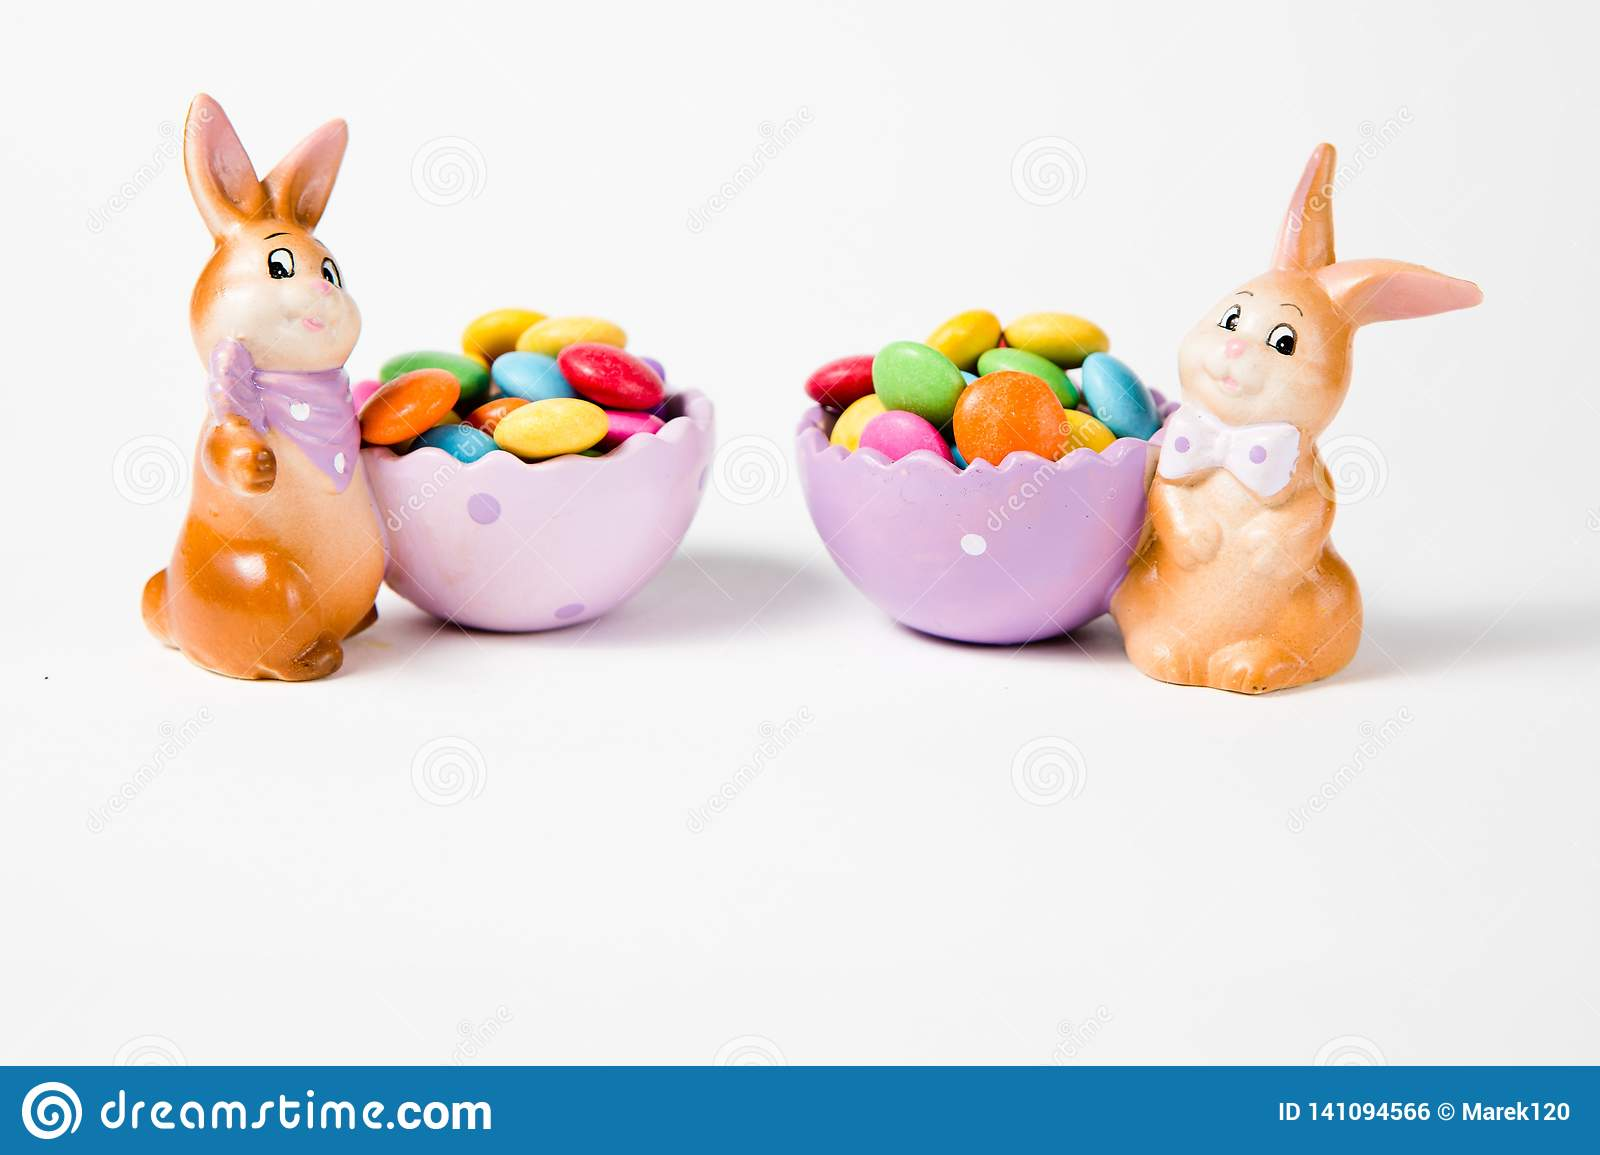 Easter decorations - Bunnies with full baskets